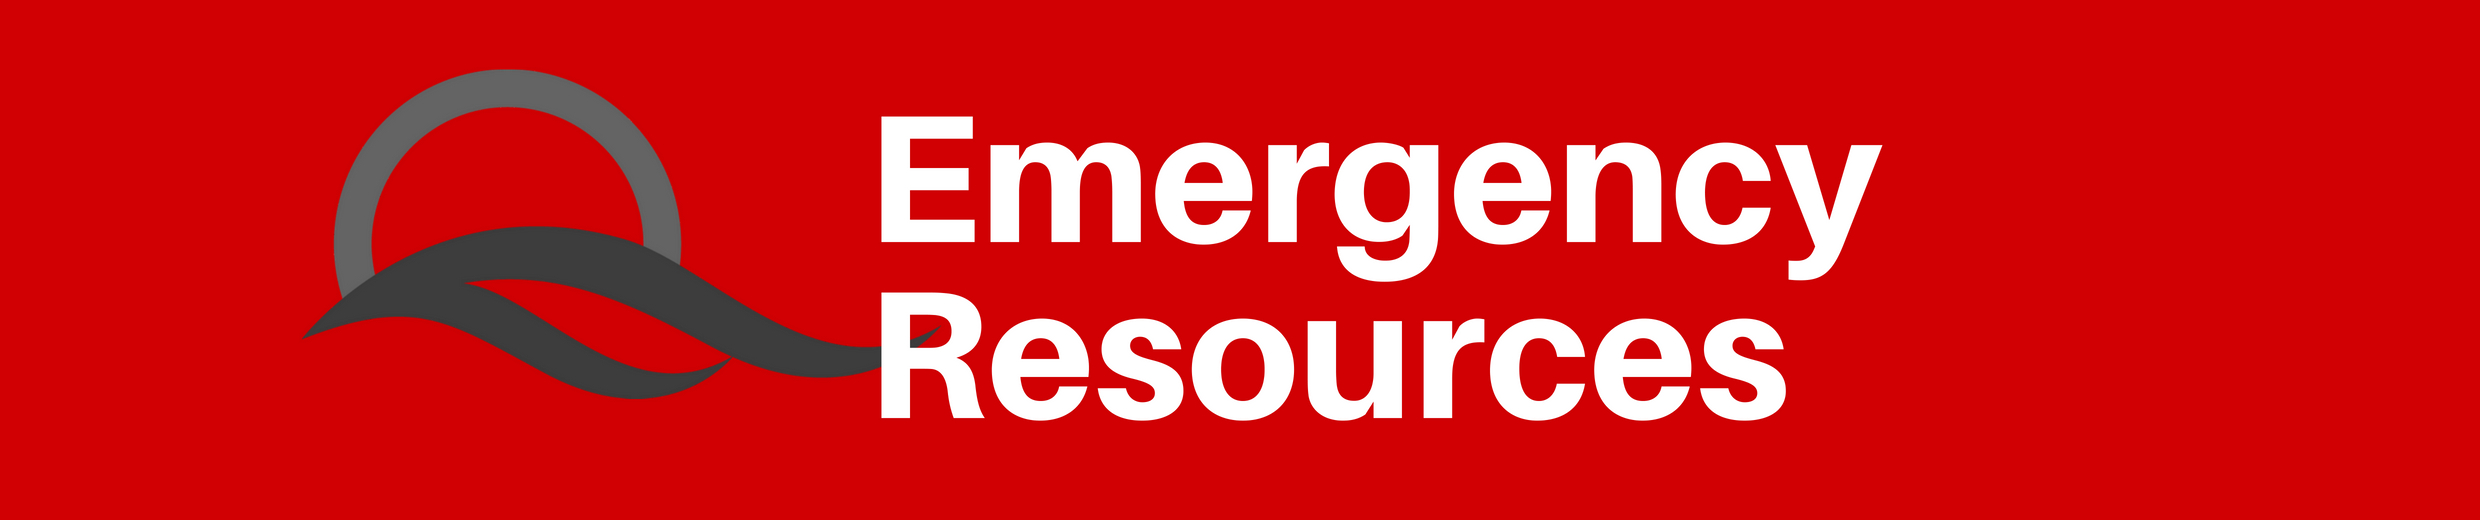 Emergency Resources Title